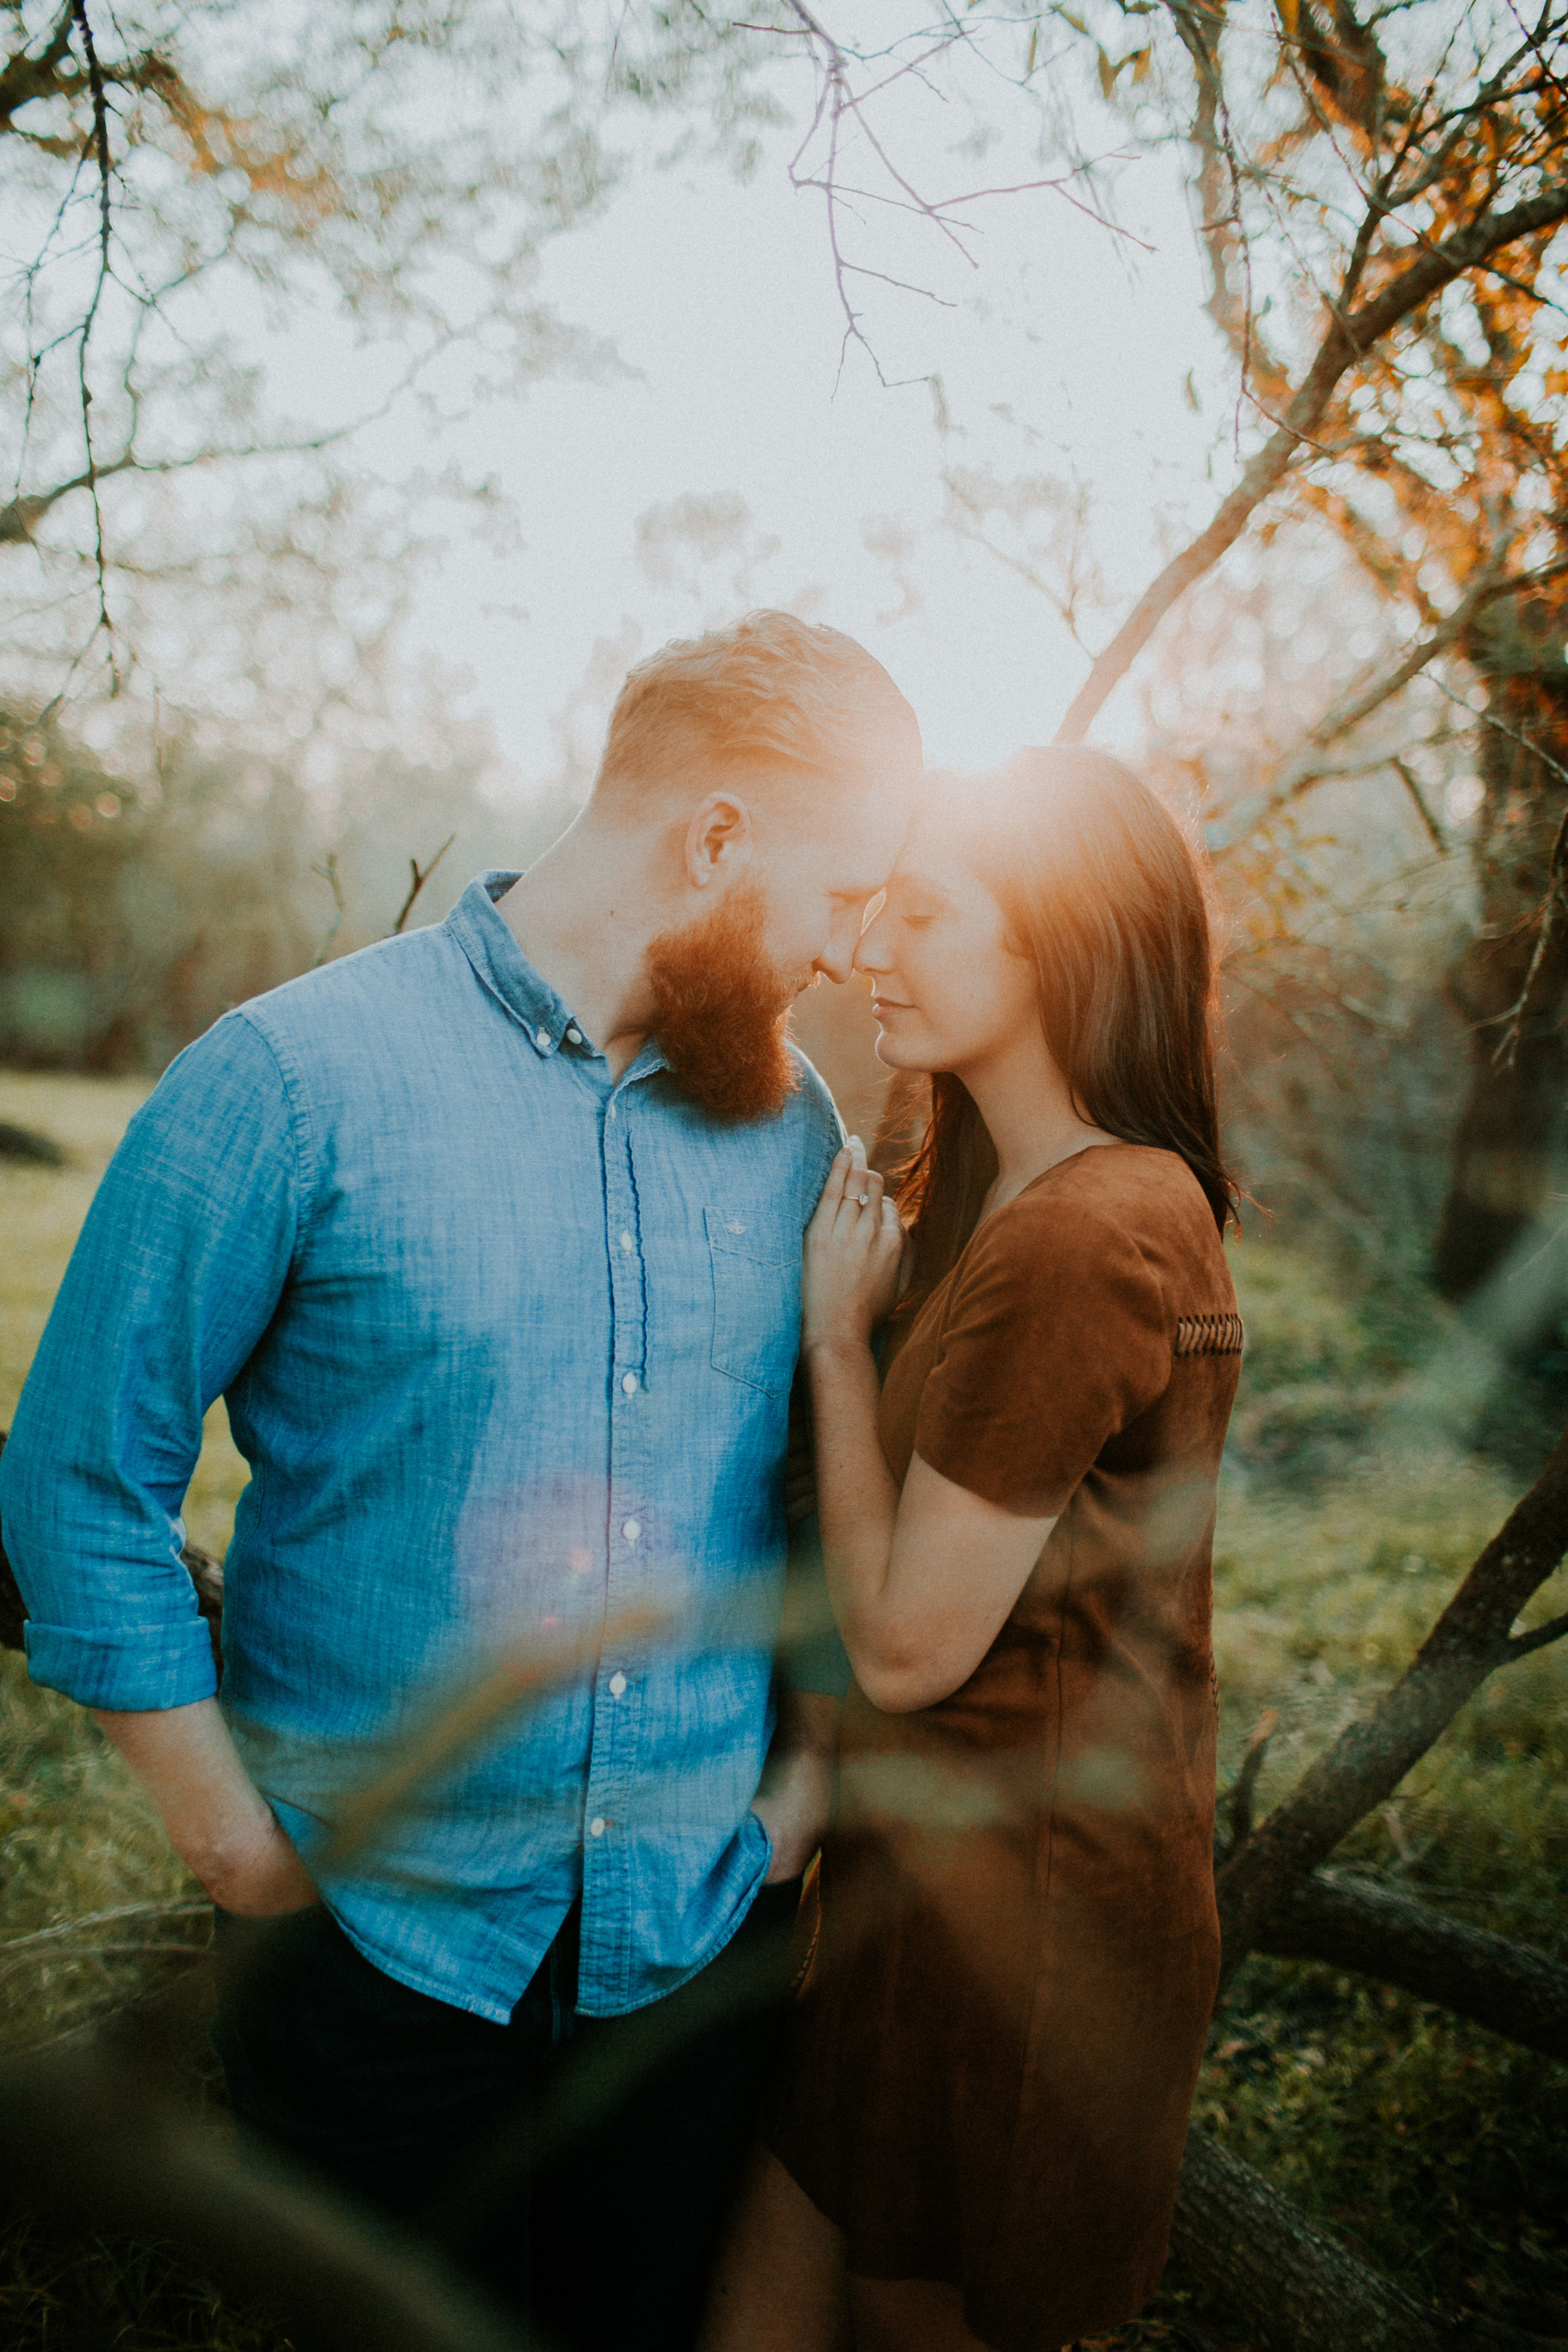 Erin_and_Jacob___The_Frost_Collective_Engagement_Session_1257.jpg